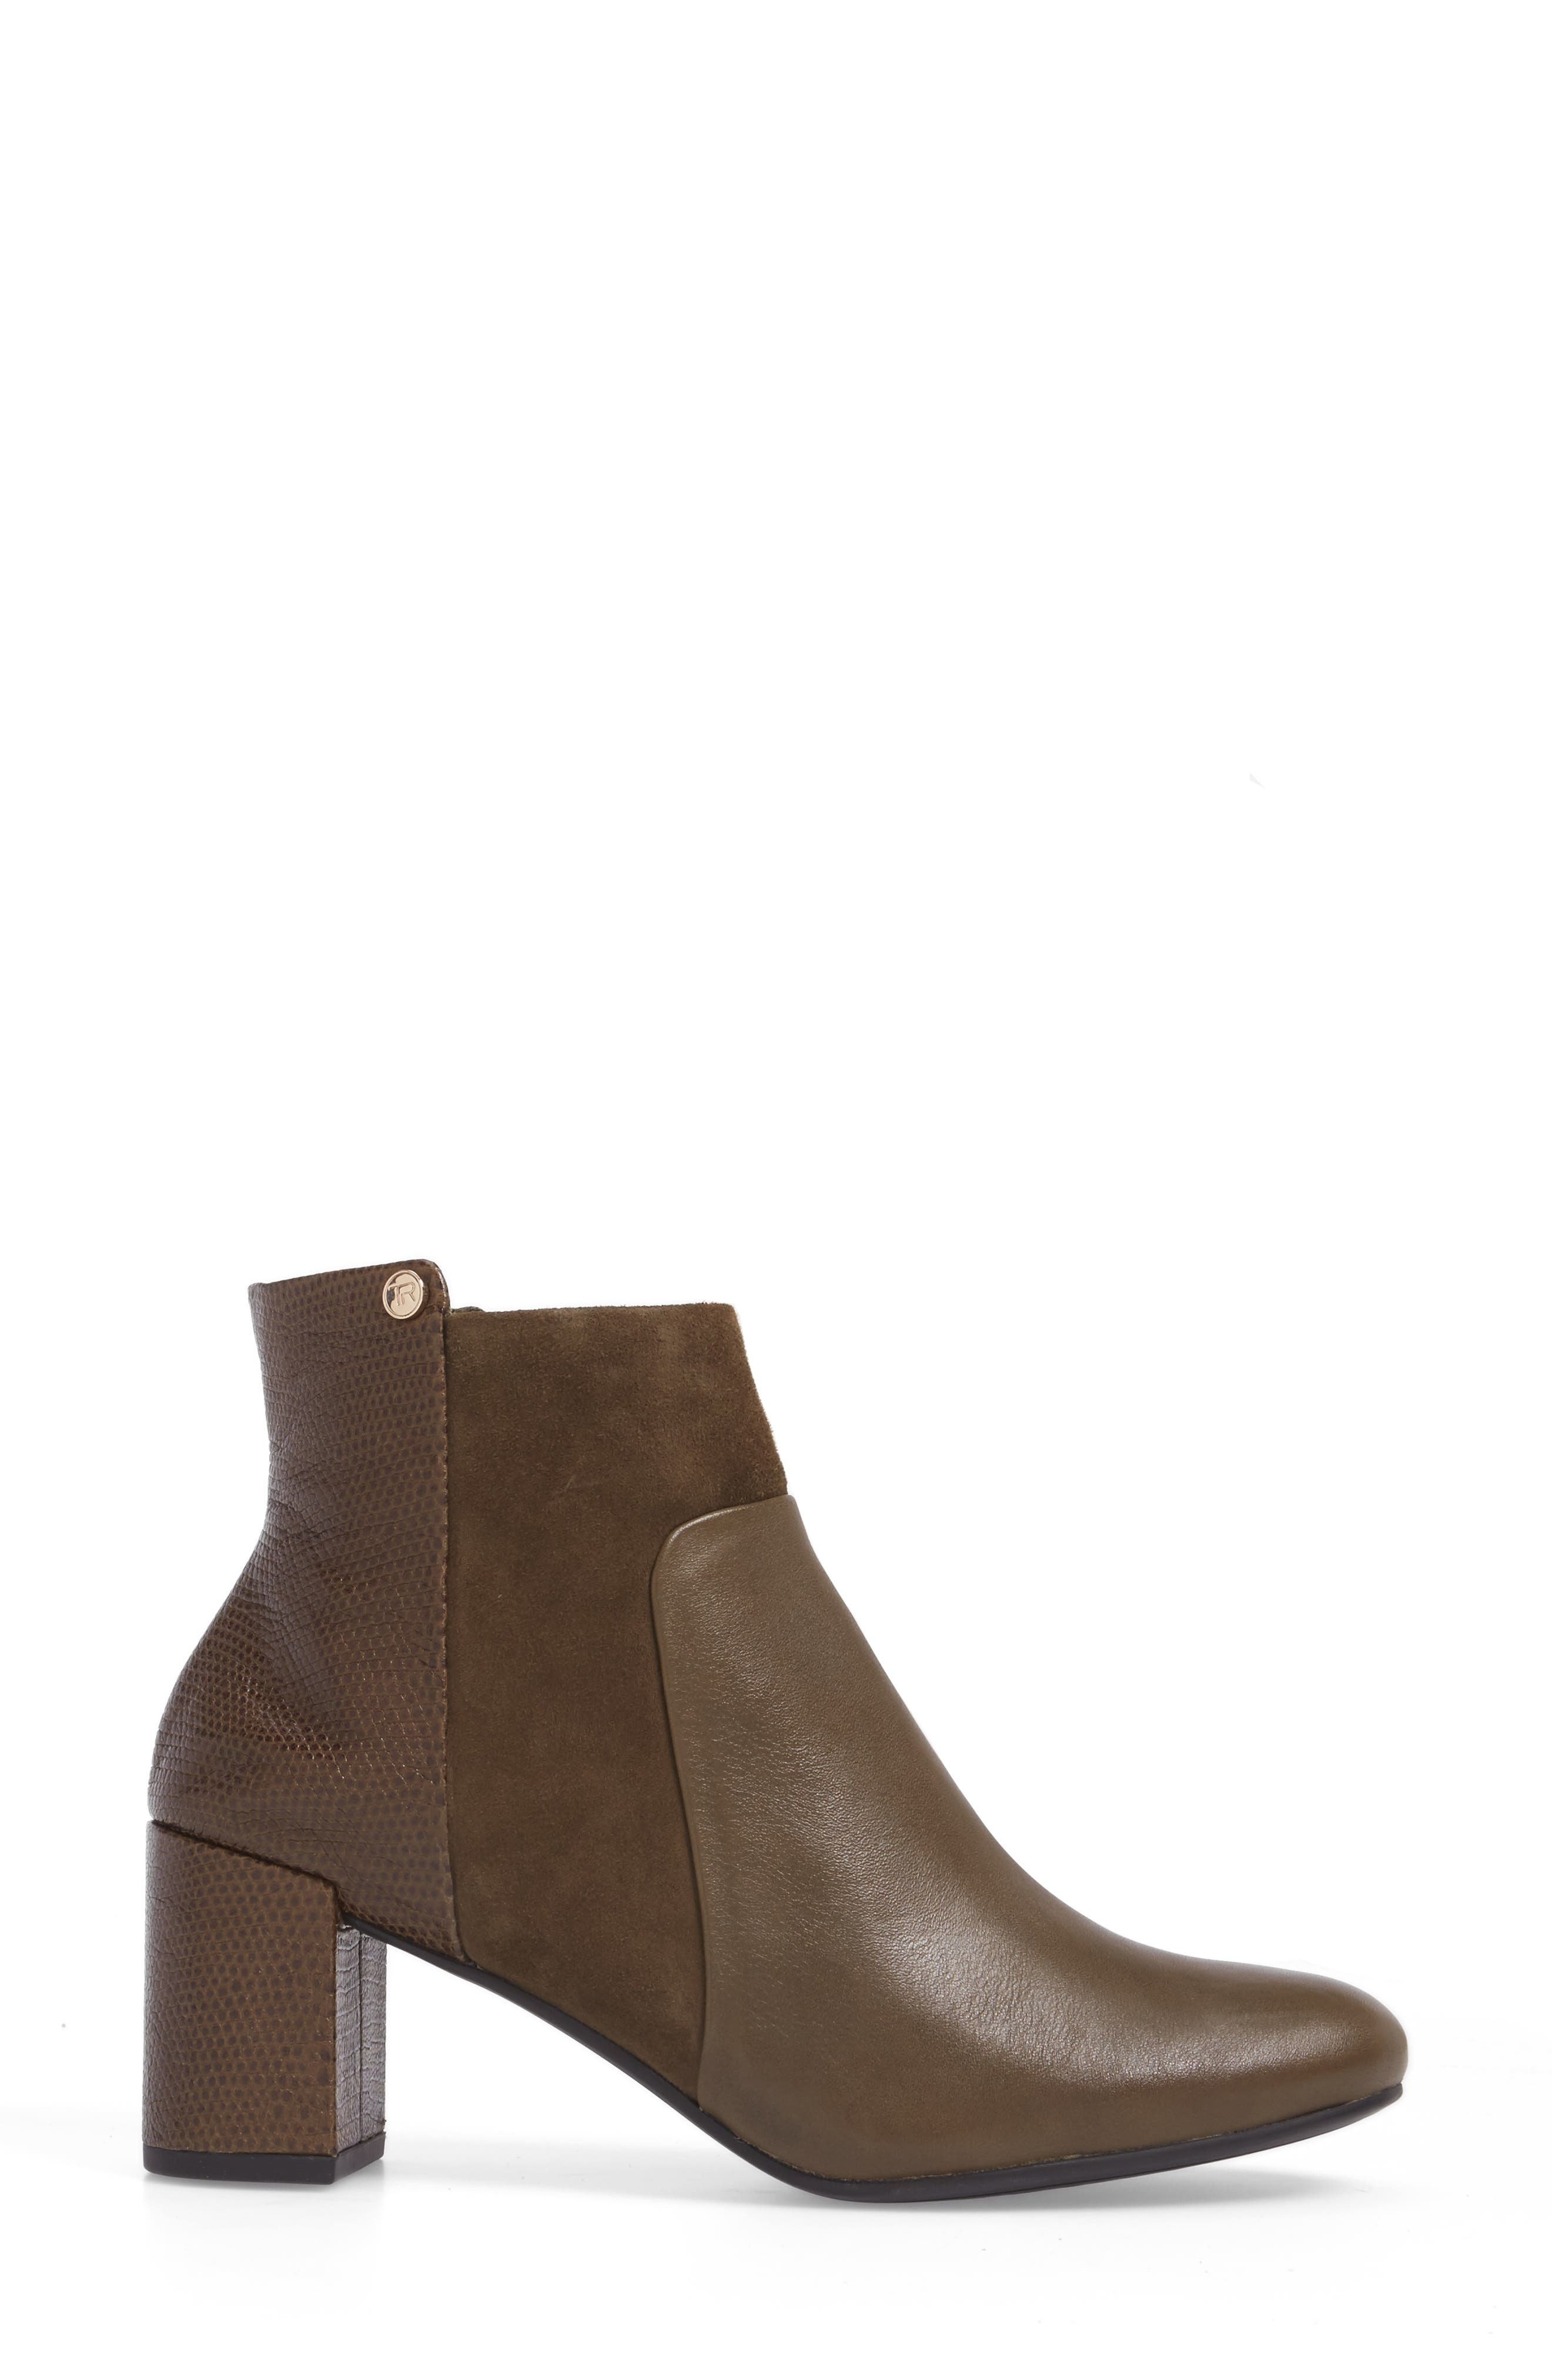 Camille Block Heel Bootie,                             Alternate thumbnail 3, color,                             Olive Leather